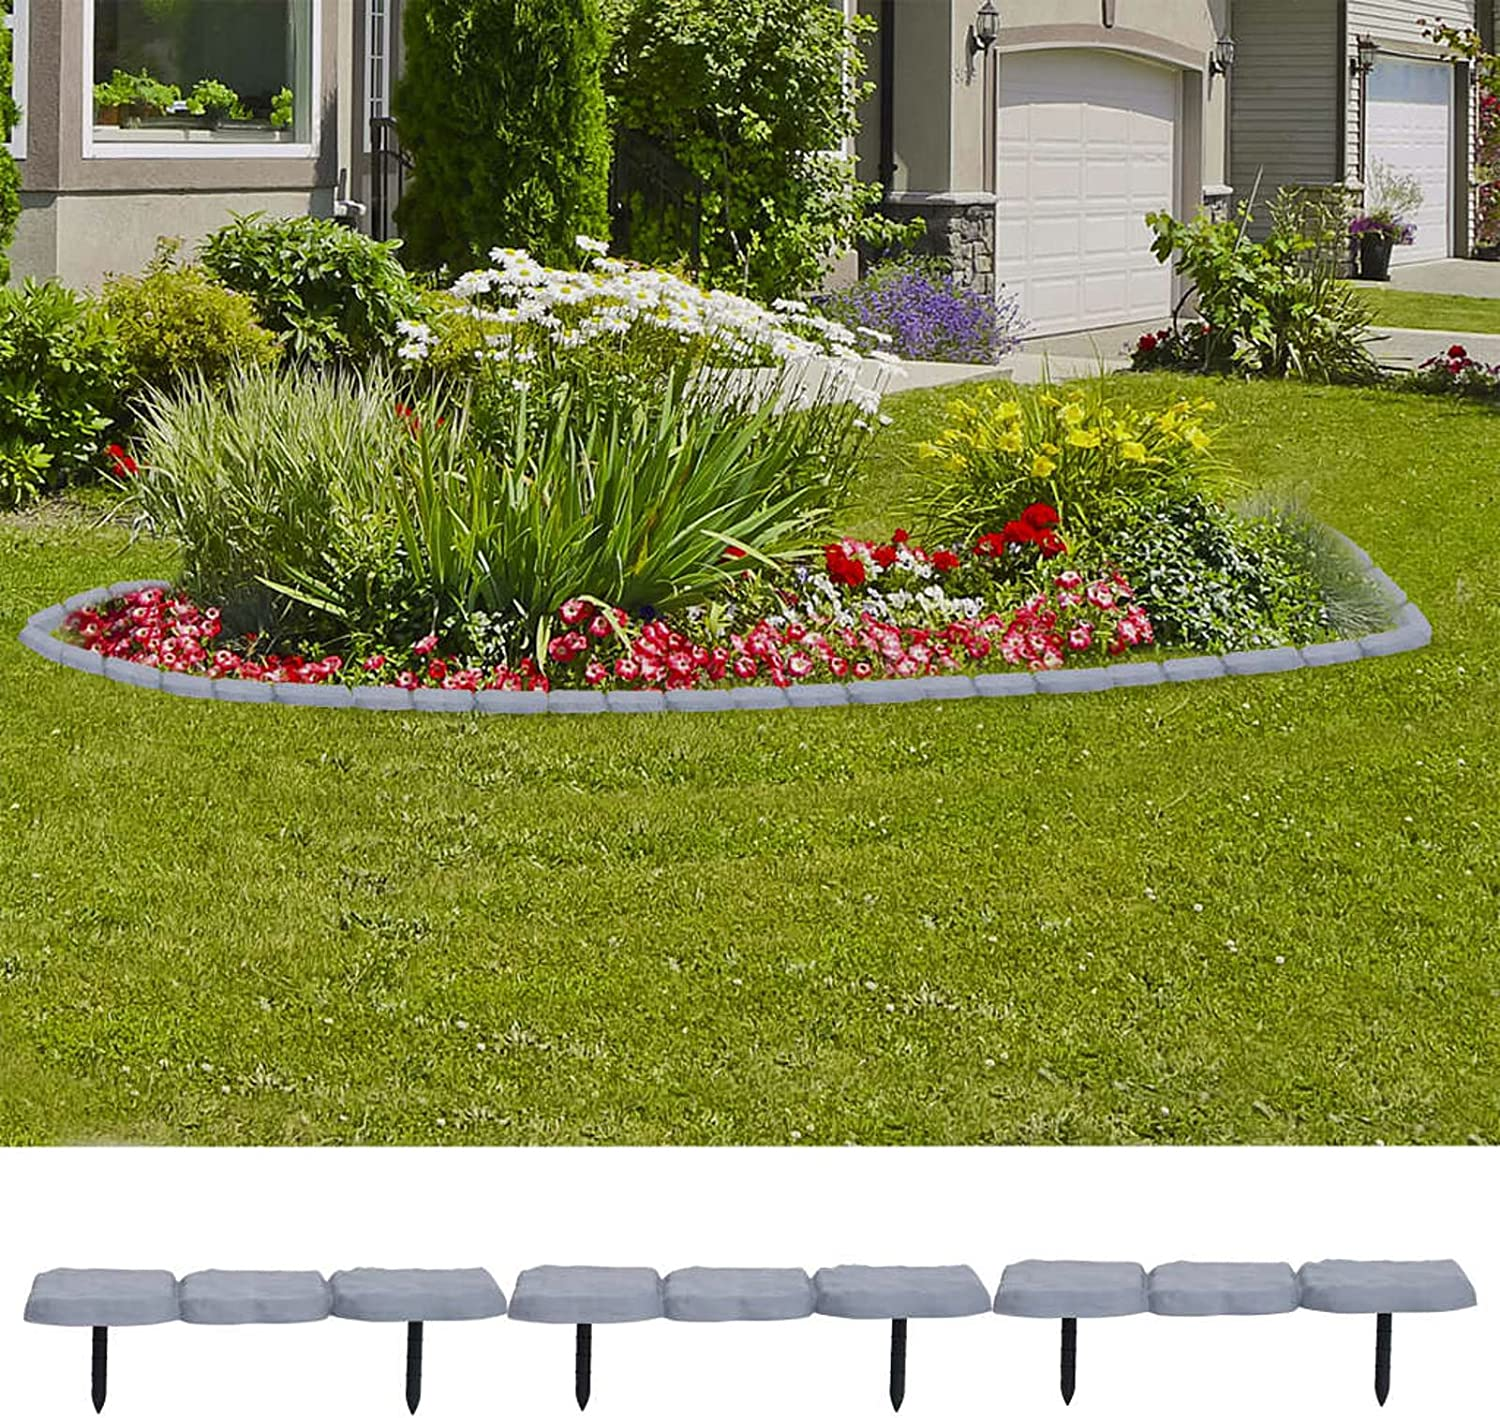 Tidyard 30 Piece Lawn Edgings Plastic Stone Look Garden Landscape Divider Border Outdoor Flower Grass Plant Bed Fence Edging Decor Gray for Yard, Lawn, Landscaping, Patio